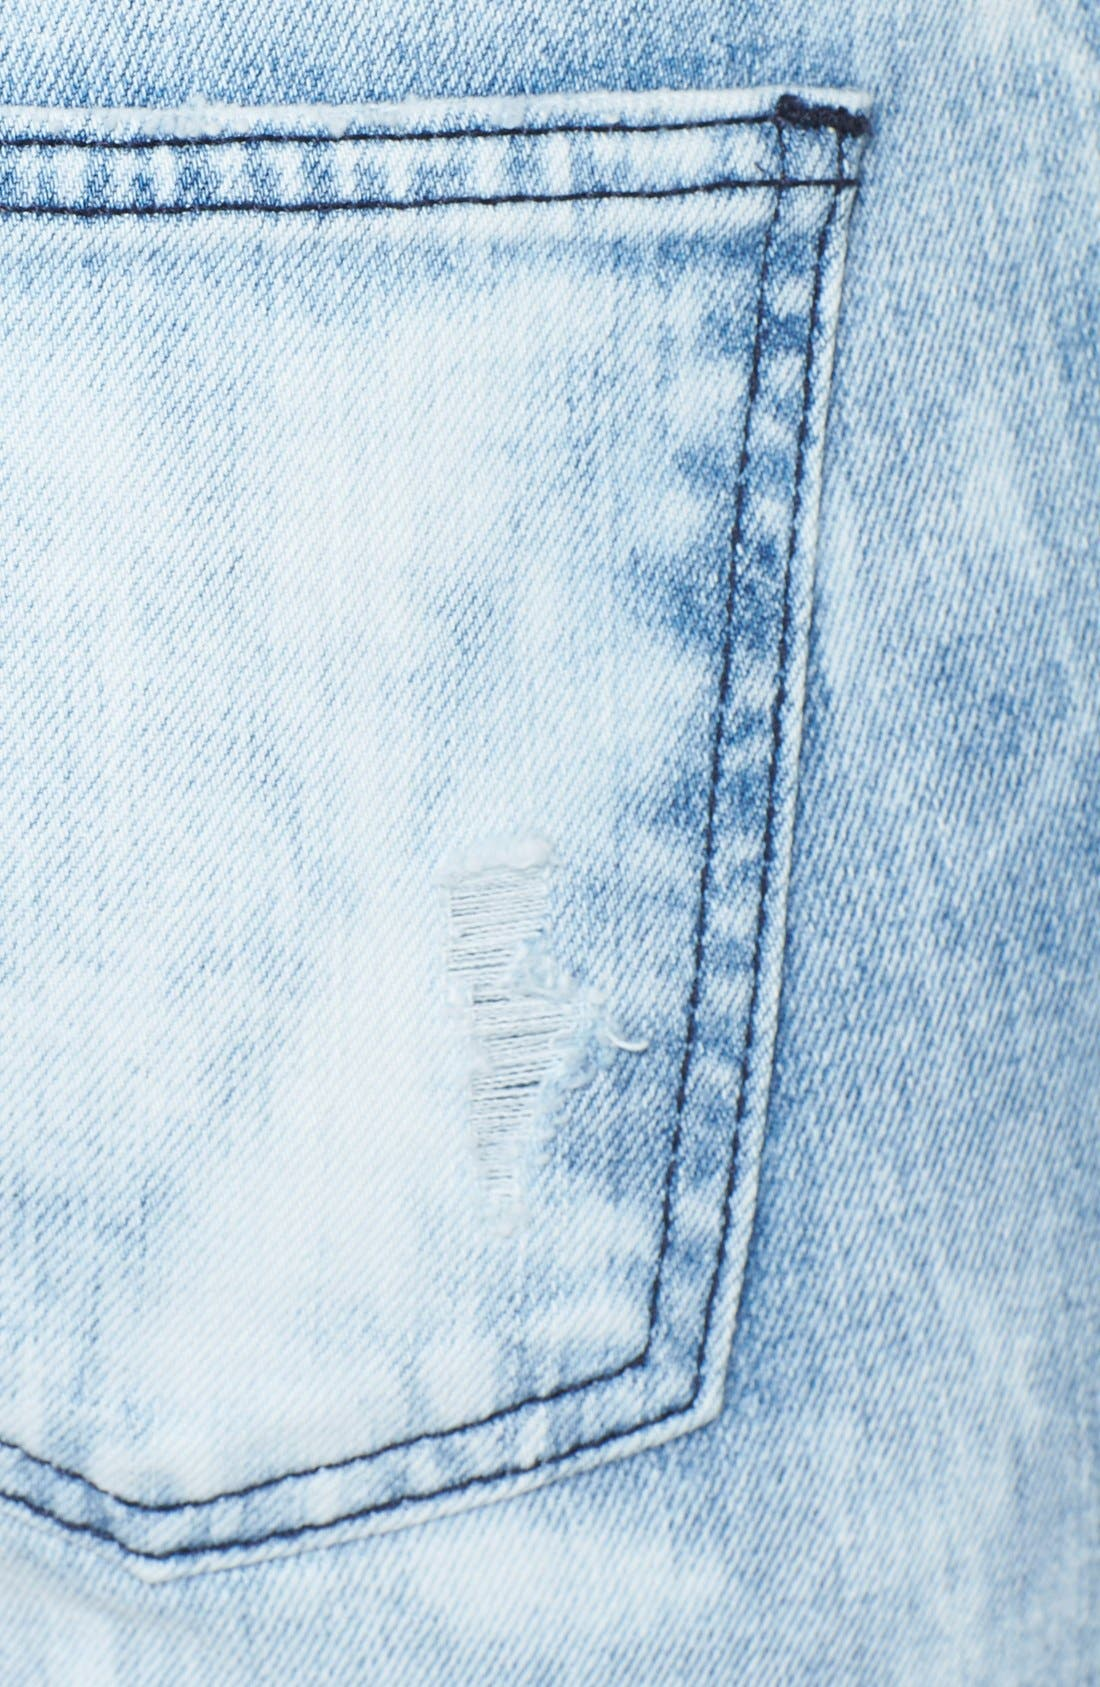 'The Stiletto' Destroyed Skinny Jeans,                             Alternate thumbnail 23, color,